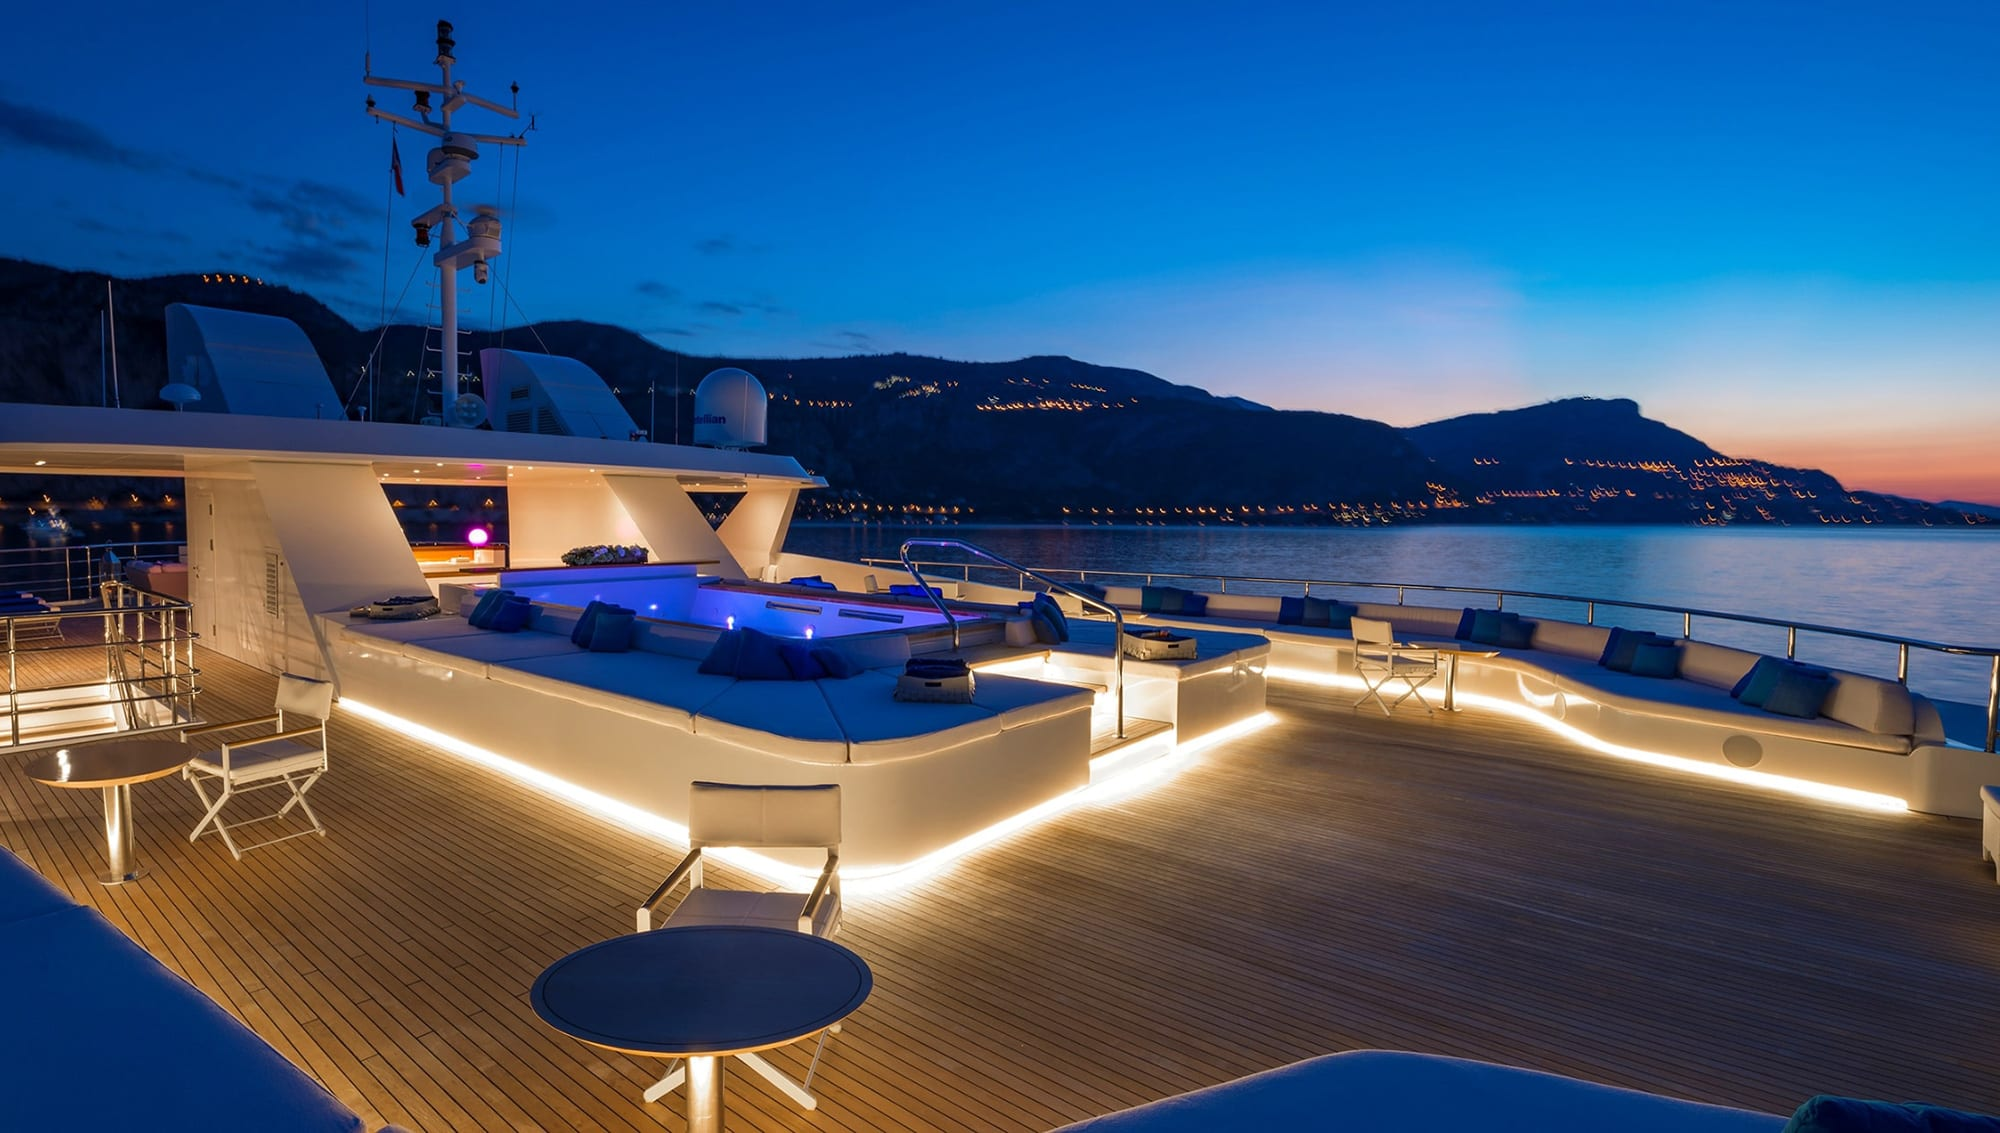 Rent the Yacht, <br> Own the Feeling.